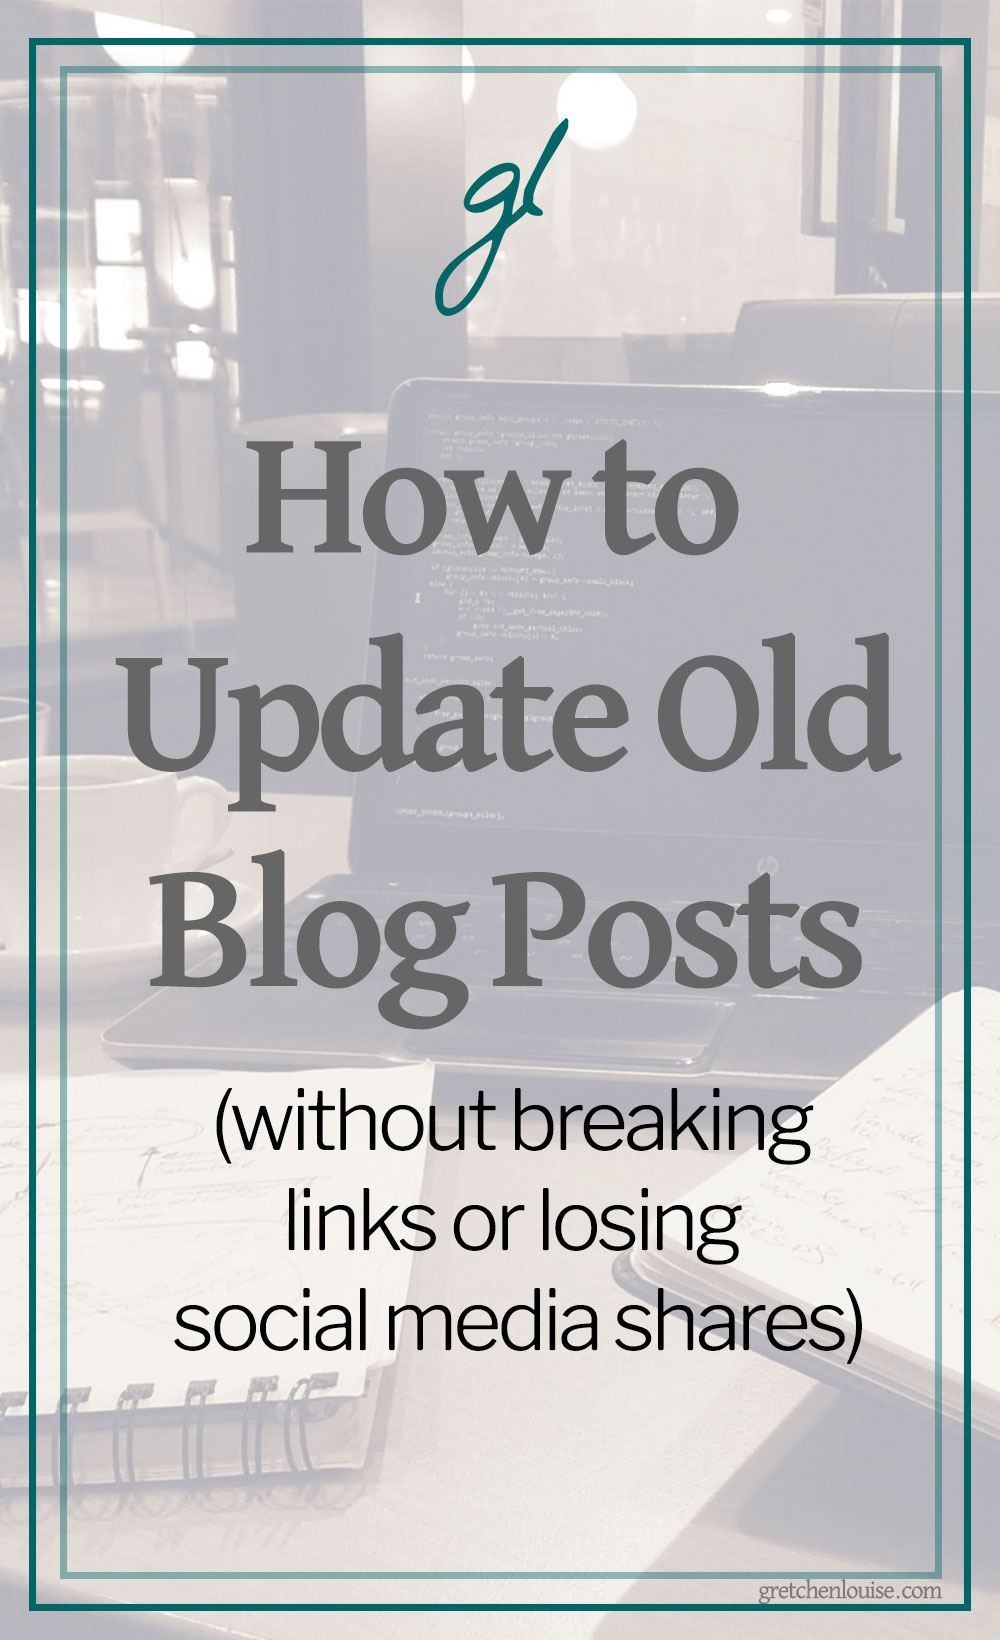 Want to make changes to old blog posts? Need to republish a post from the archives? I'll show you how to do it without breaking any links or losing your social media share counts! via @GretLouise